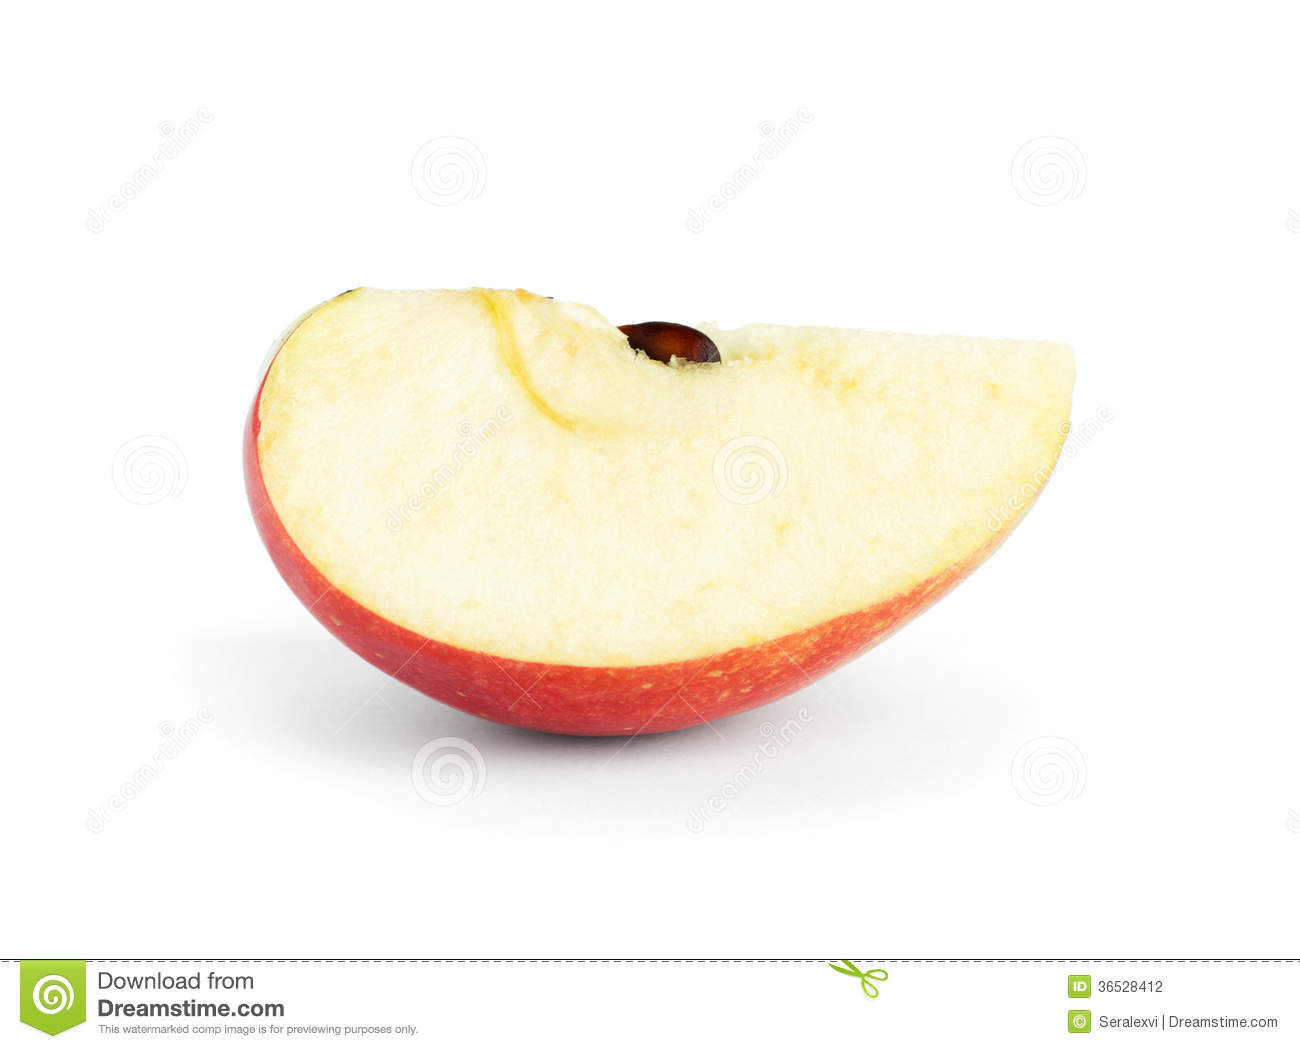 Apple Slice Stock Photography - Image: 36528412